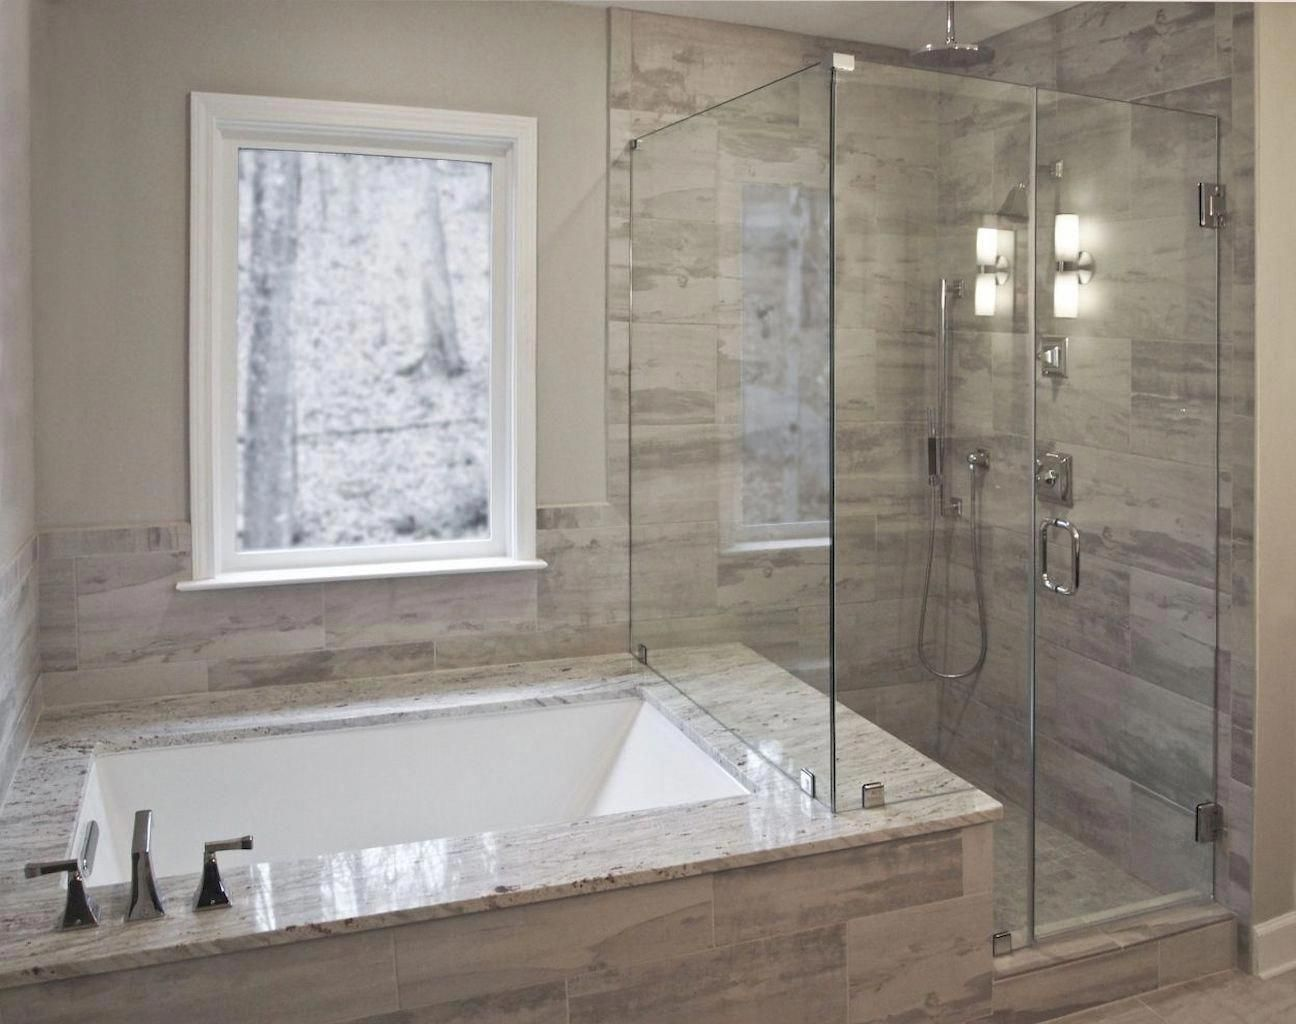 Take A Look At This Essential Pic In Order To Visit The Here And Now Knowledge On Soaker Bathroom Remodel Master Modern Master Bathroom Master Bathroom Design